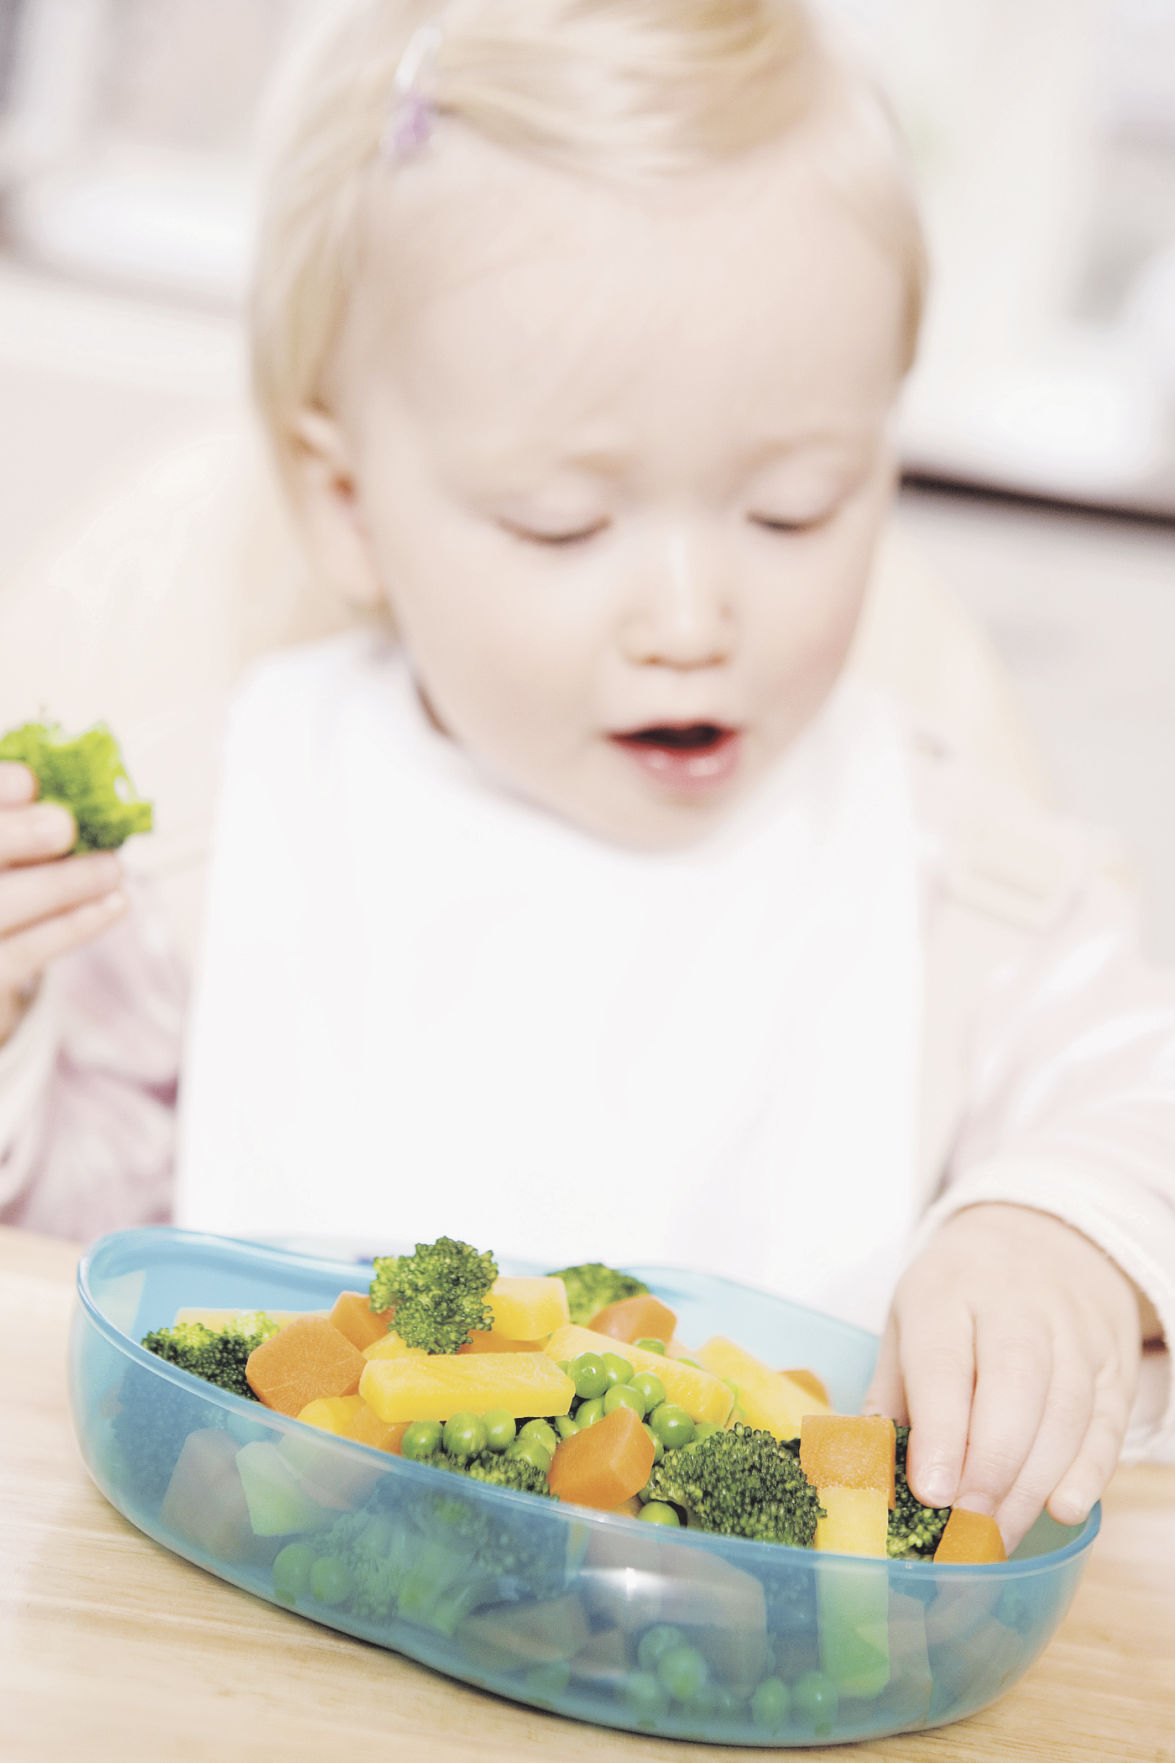 Be creative, sneaky to add vegetables to kids' diets